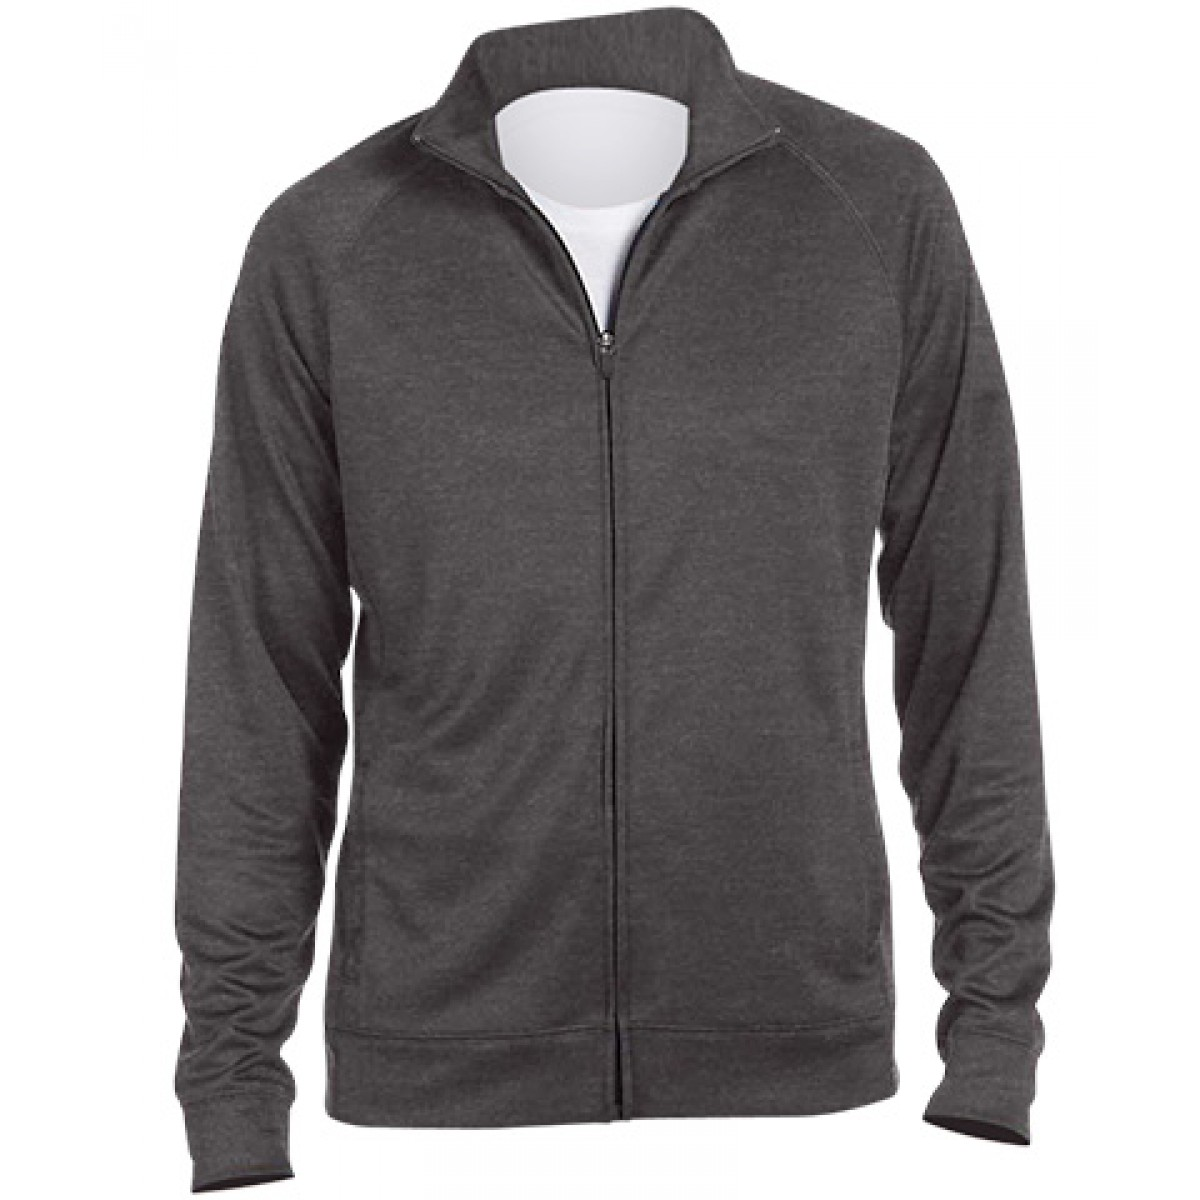 Men's Lightweight Sports Jacket-Sports Grey-L